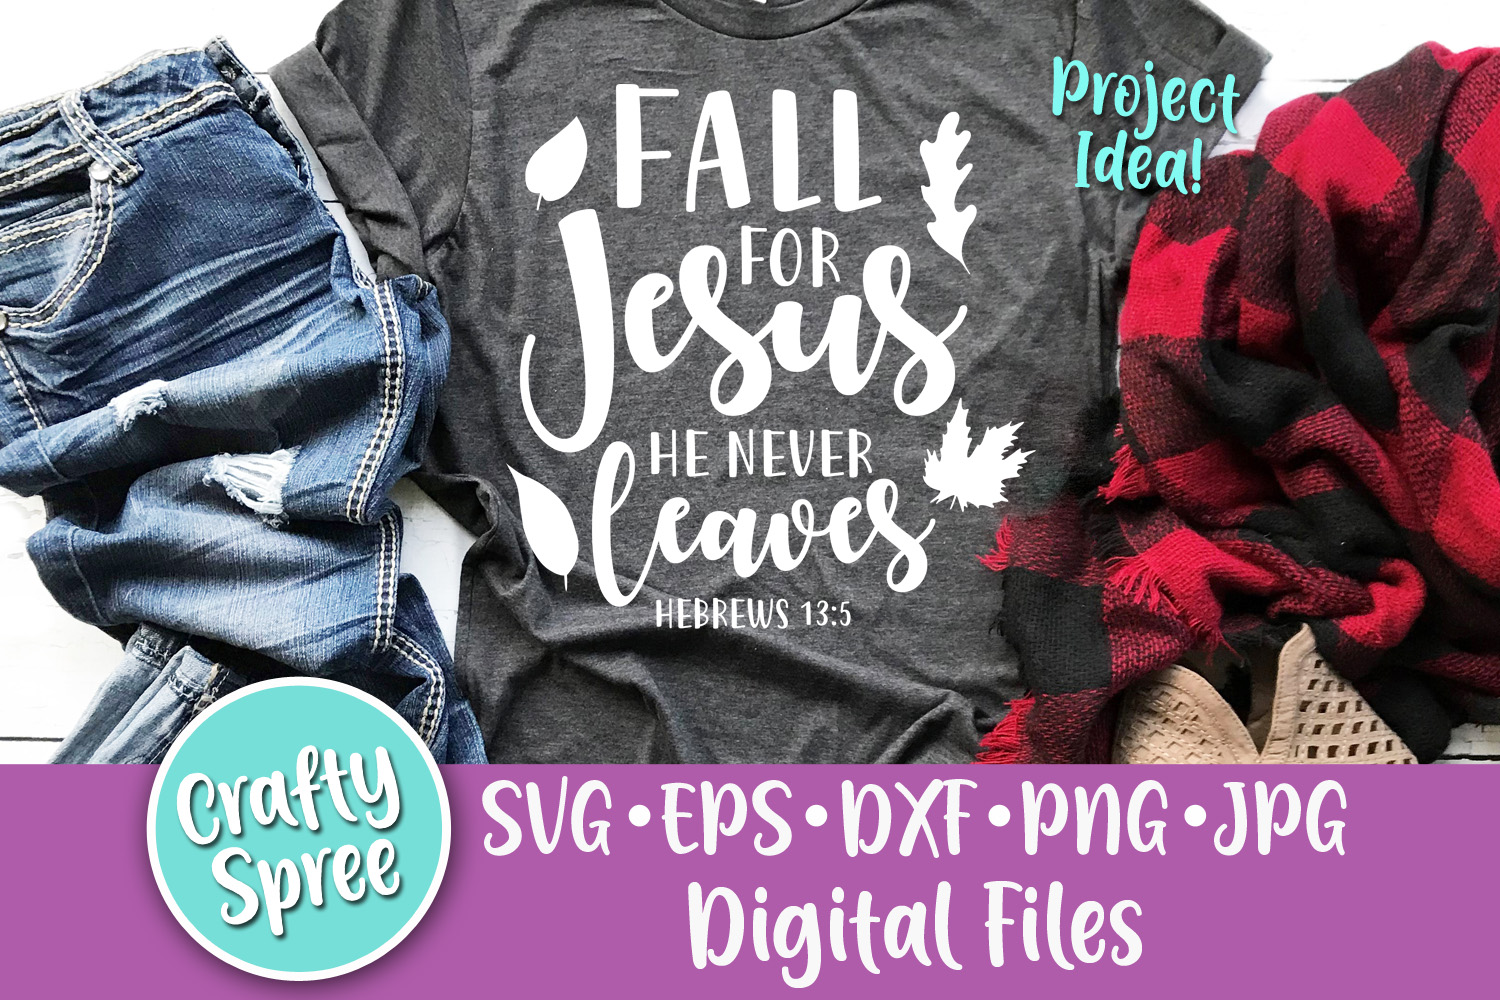 Fall for Jesus He Never Leaves SVG PNG DXF Cut File example image 1